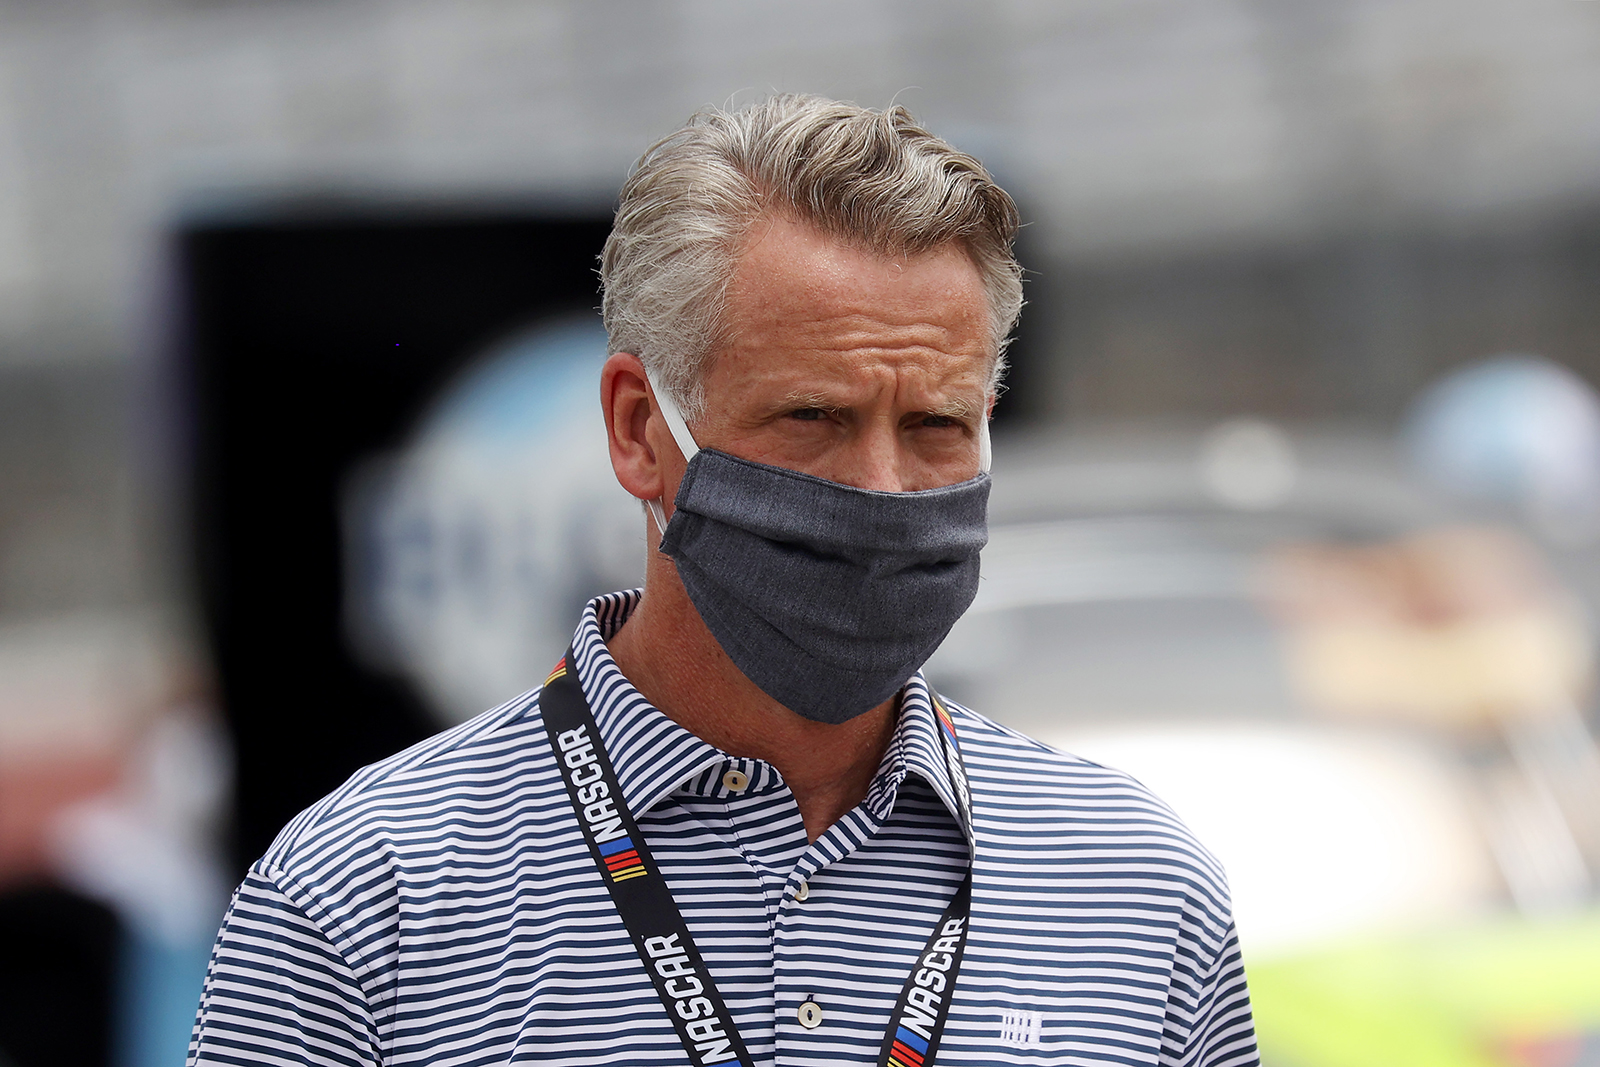 NASCAR President Steve Phelps walks the grid prior to the NASCAR Cup Series The Real Heroes 400 at Darlington Raceway in Darlington, South Carolina on May 17.